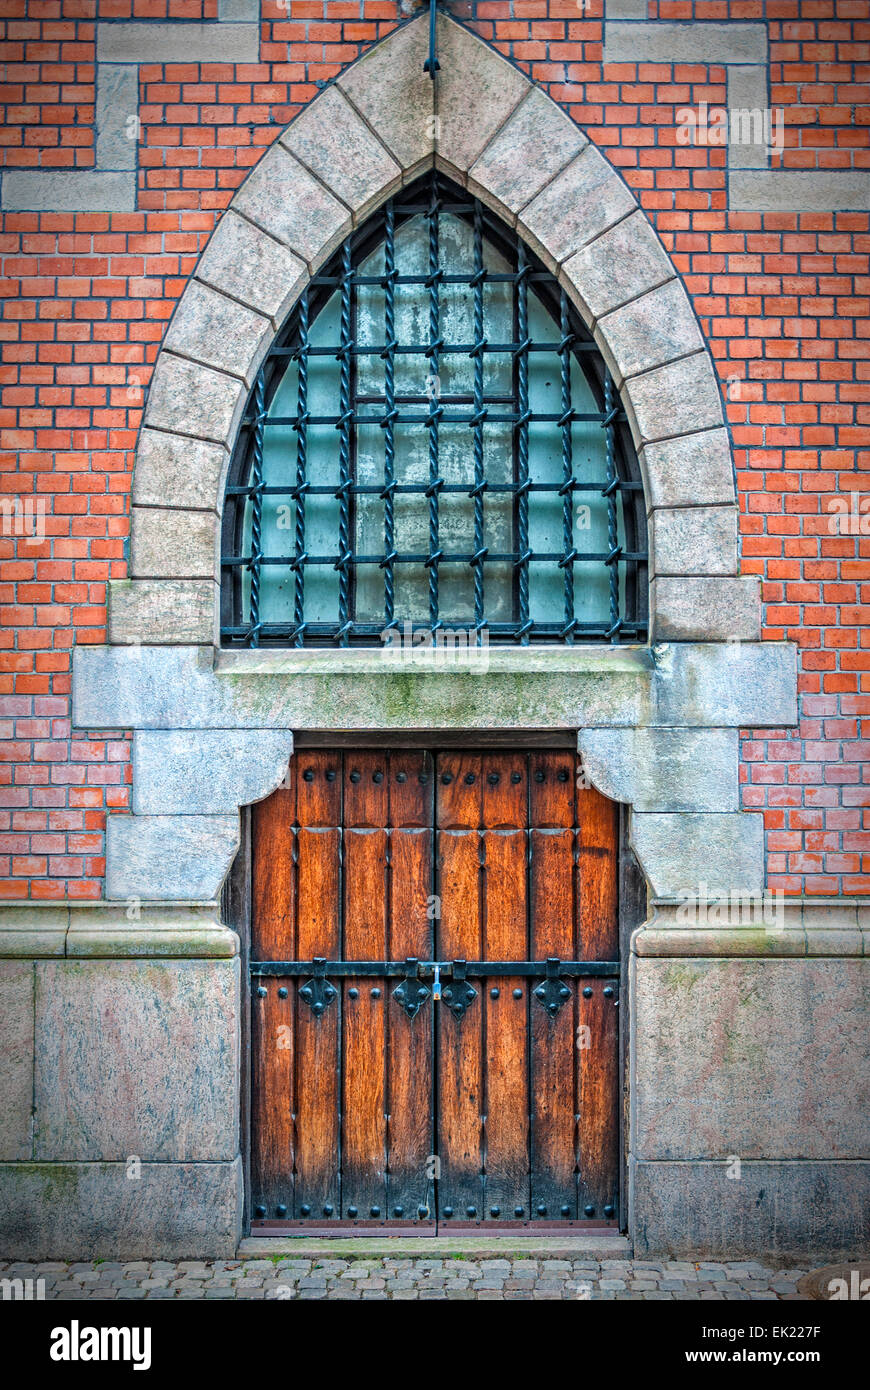 Wooden arched doors from the town hall building in Helsingborg, Sweden. - Stock Image